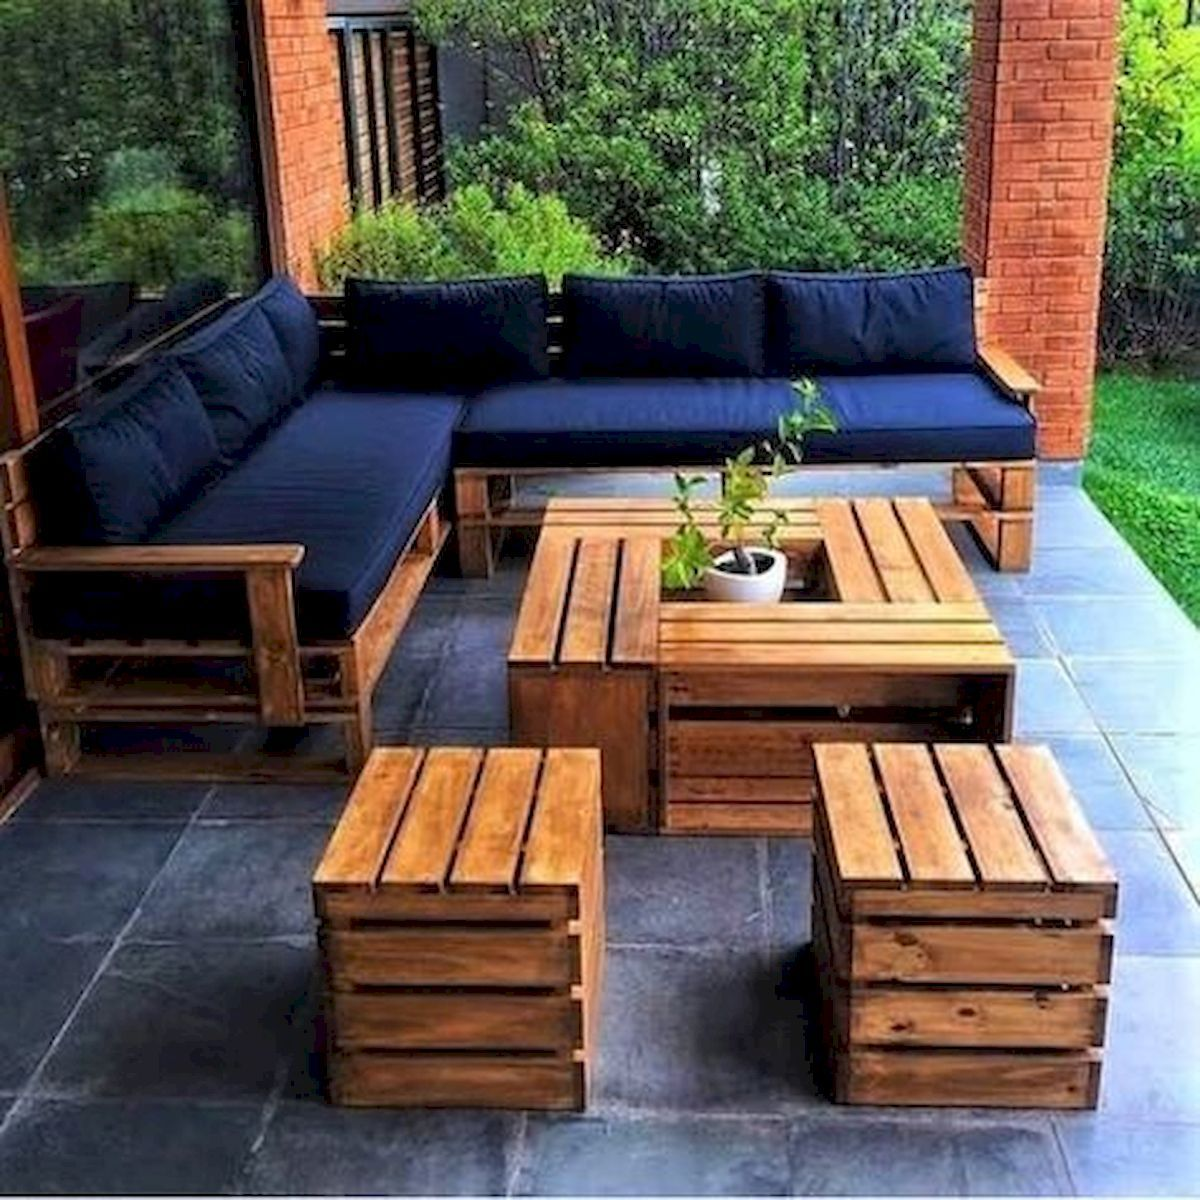 33 ideas for pallet sofa 1 pallet furniture outdoor